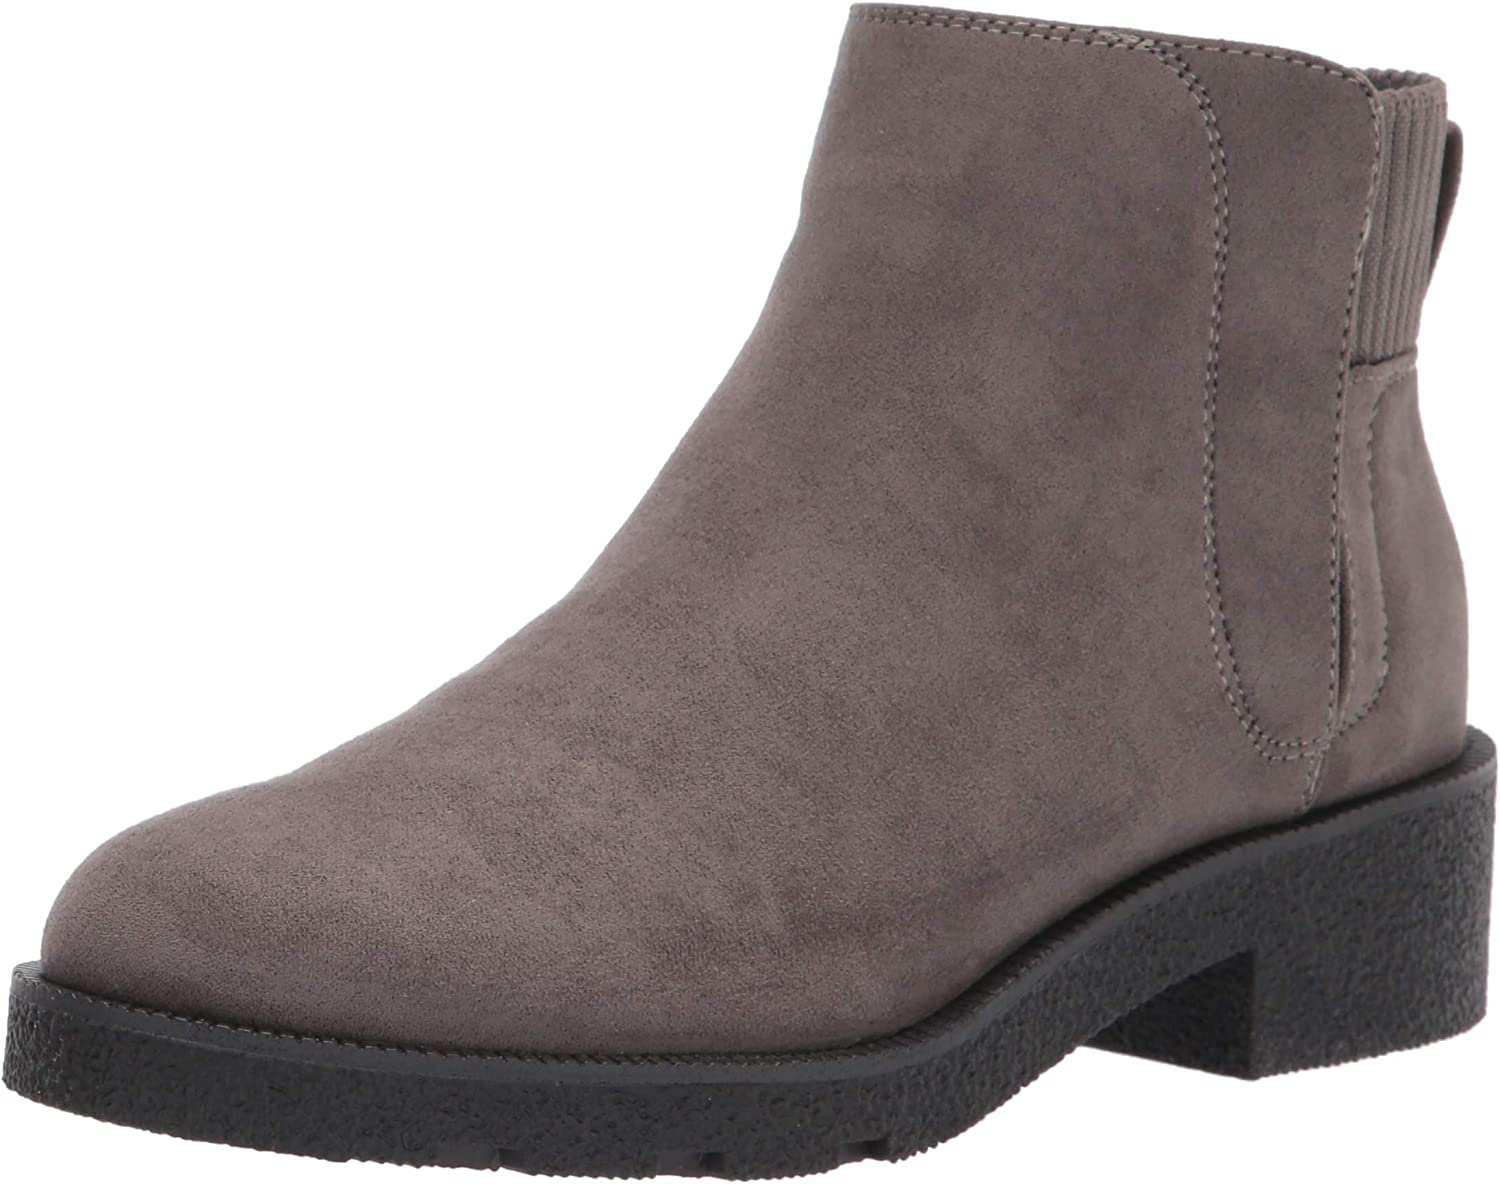 Max 61% OFF Dr. Scholl's Shoes Women's High quality Boot Trix Ankle